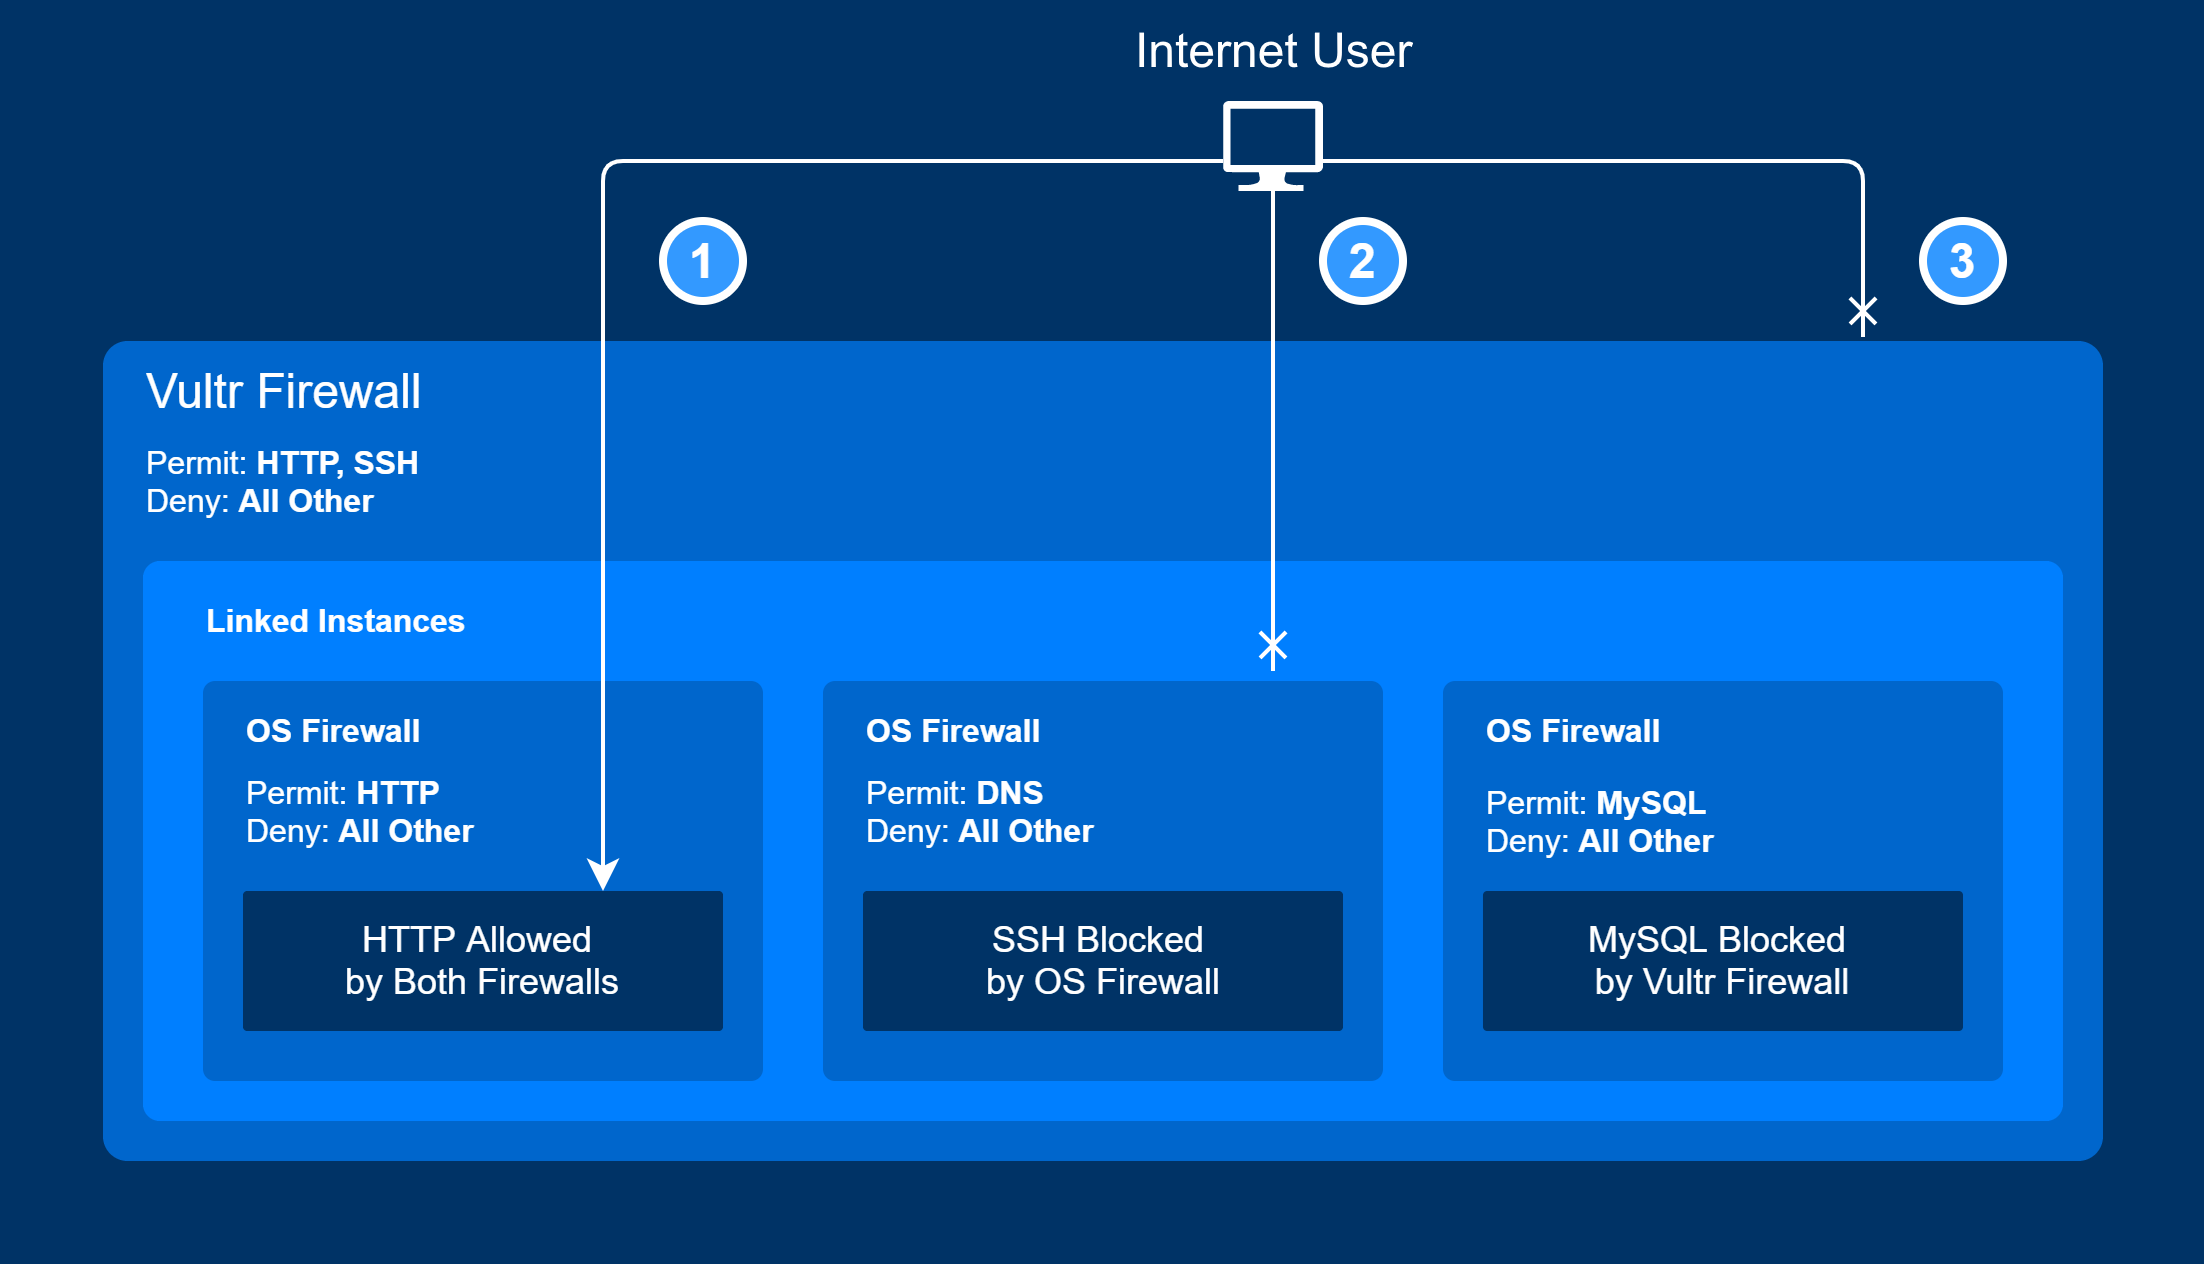 Firewall connection example